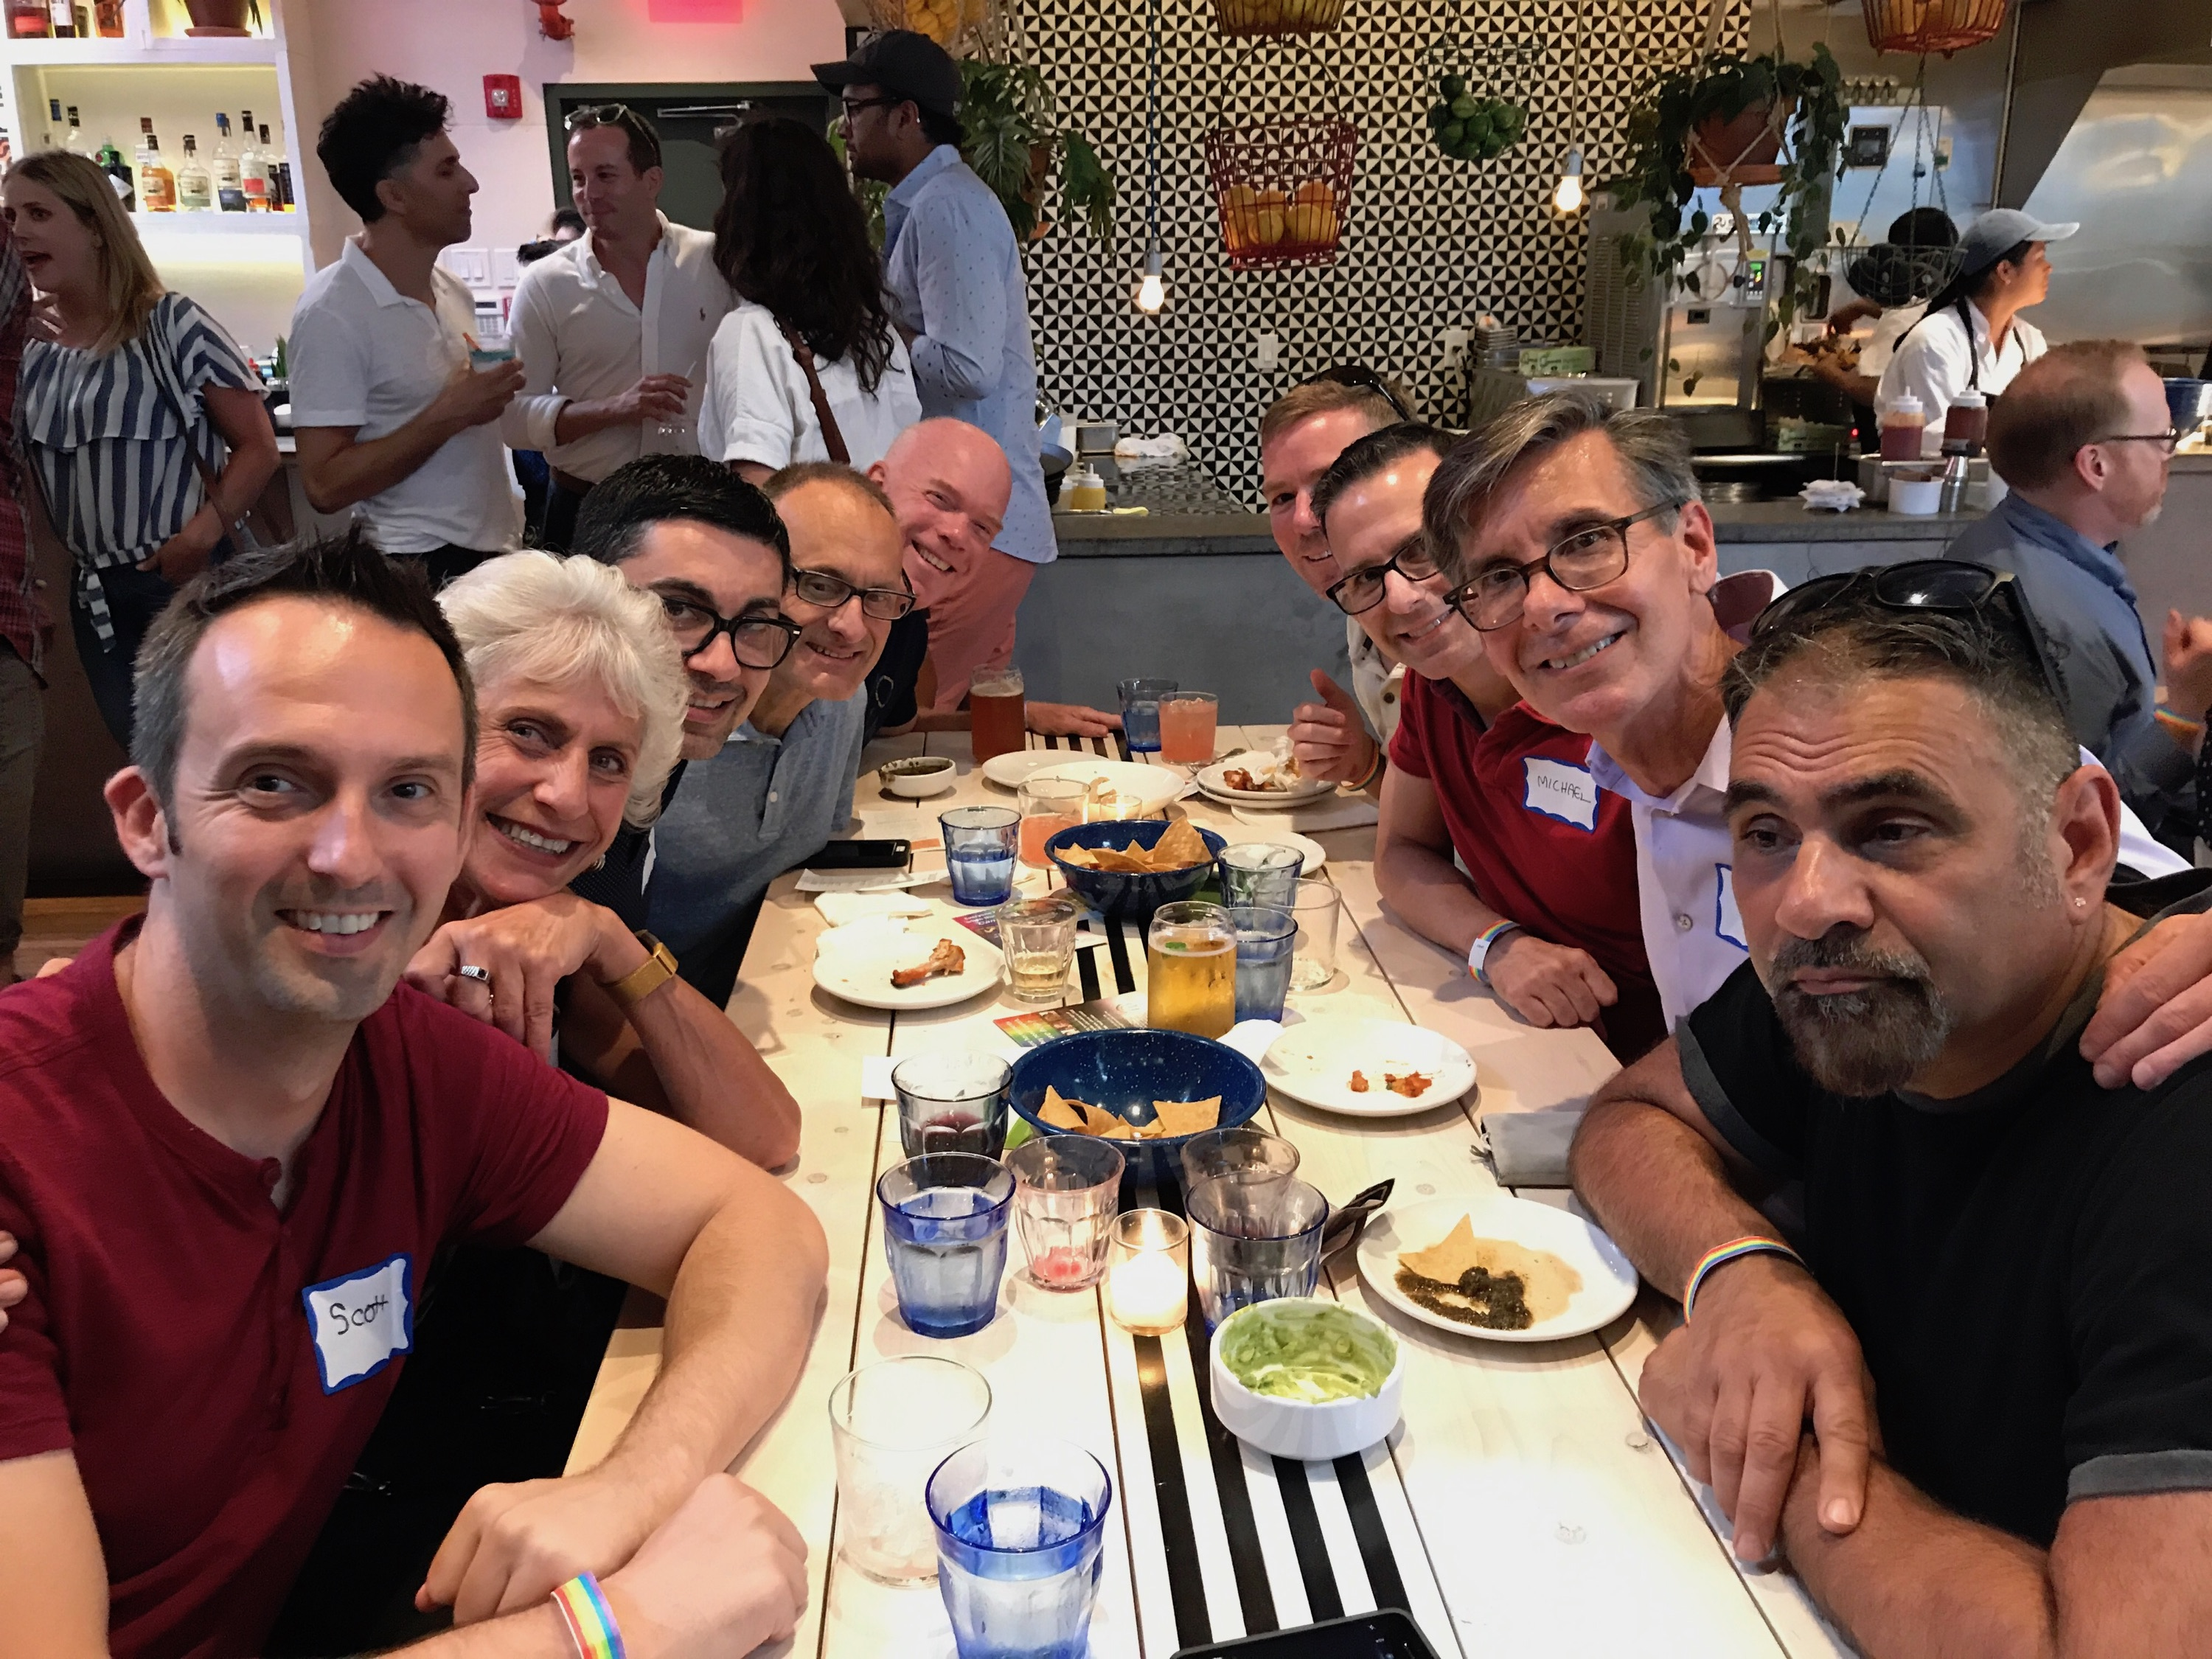 Phila Front Runners at Mission Taqueria for DVLF Event 7/11/2017